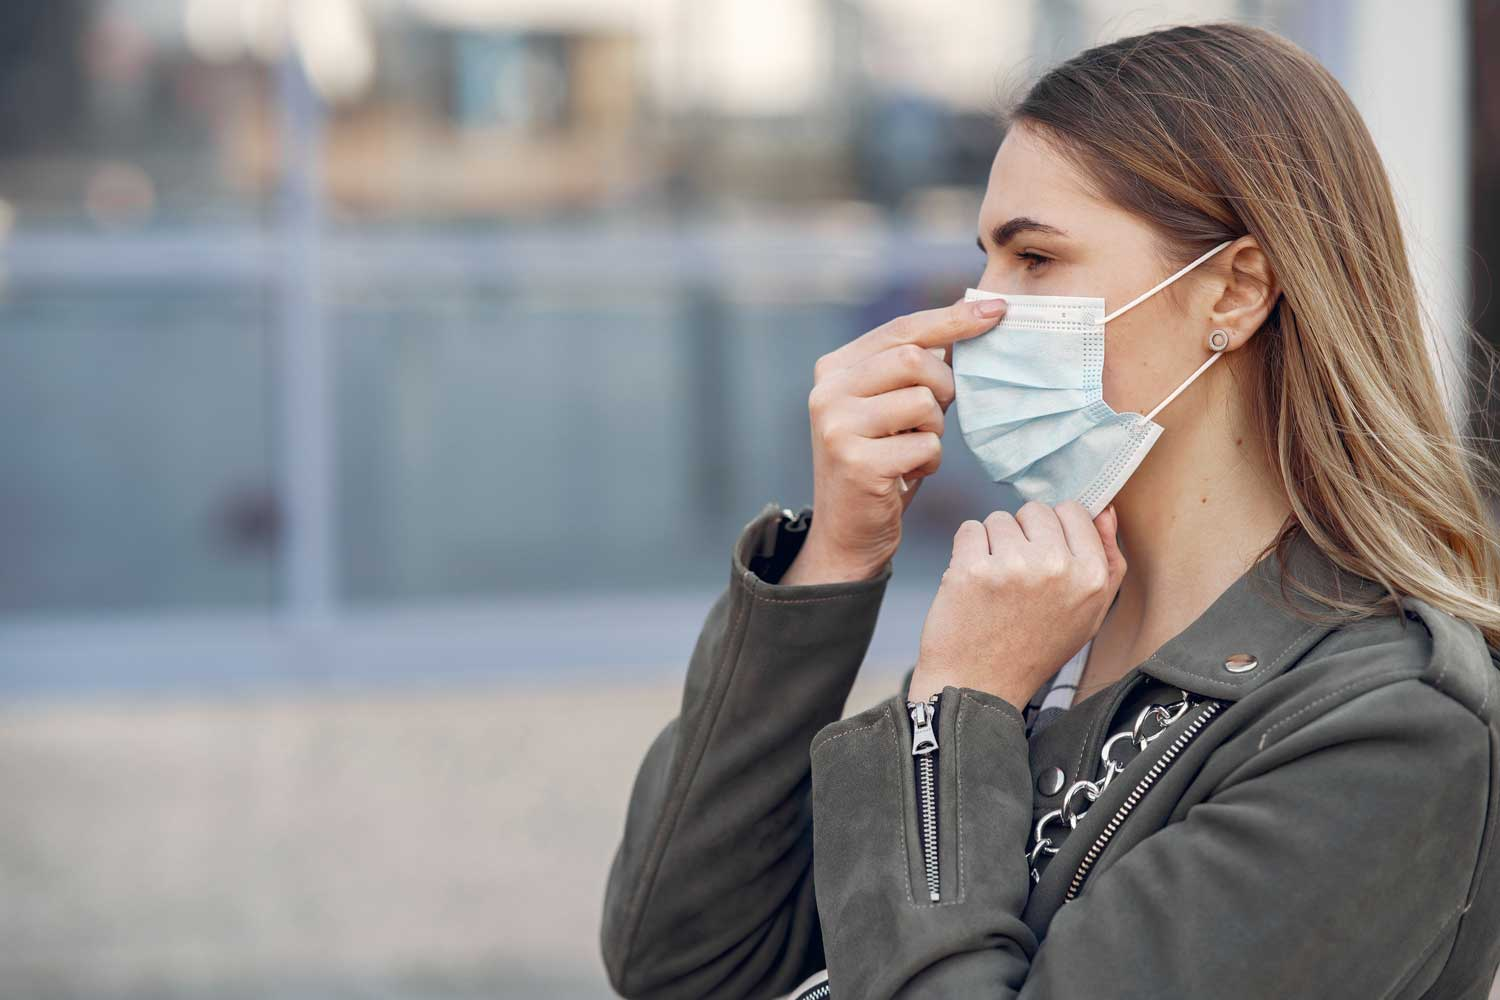 Bad Mask Breath? Listen To Your Mask